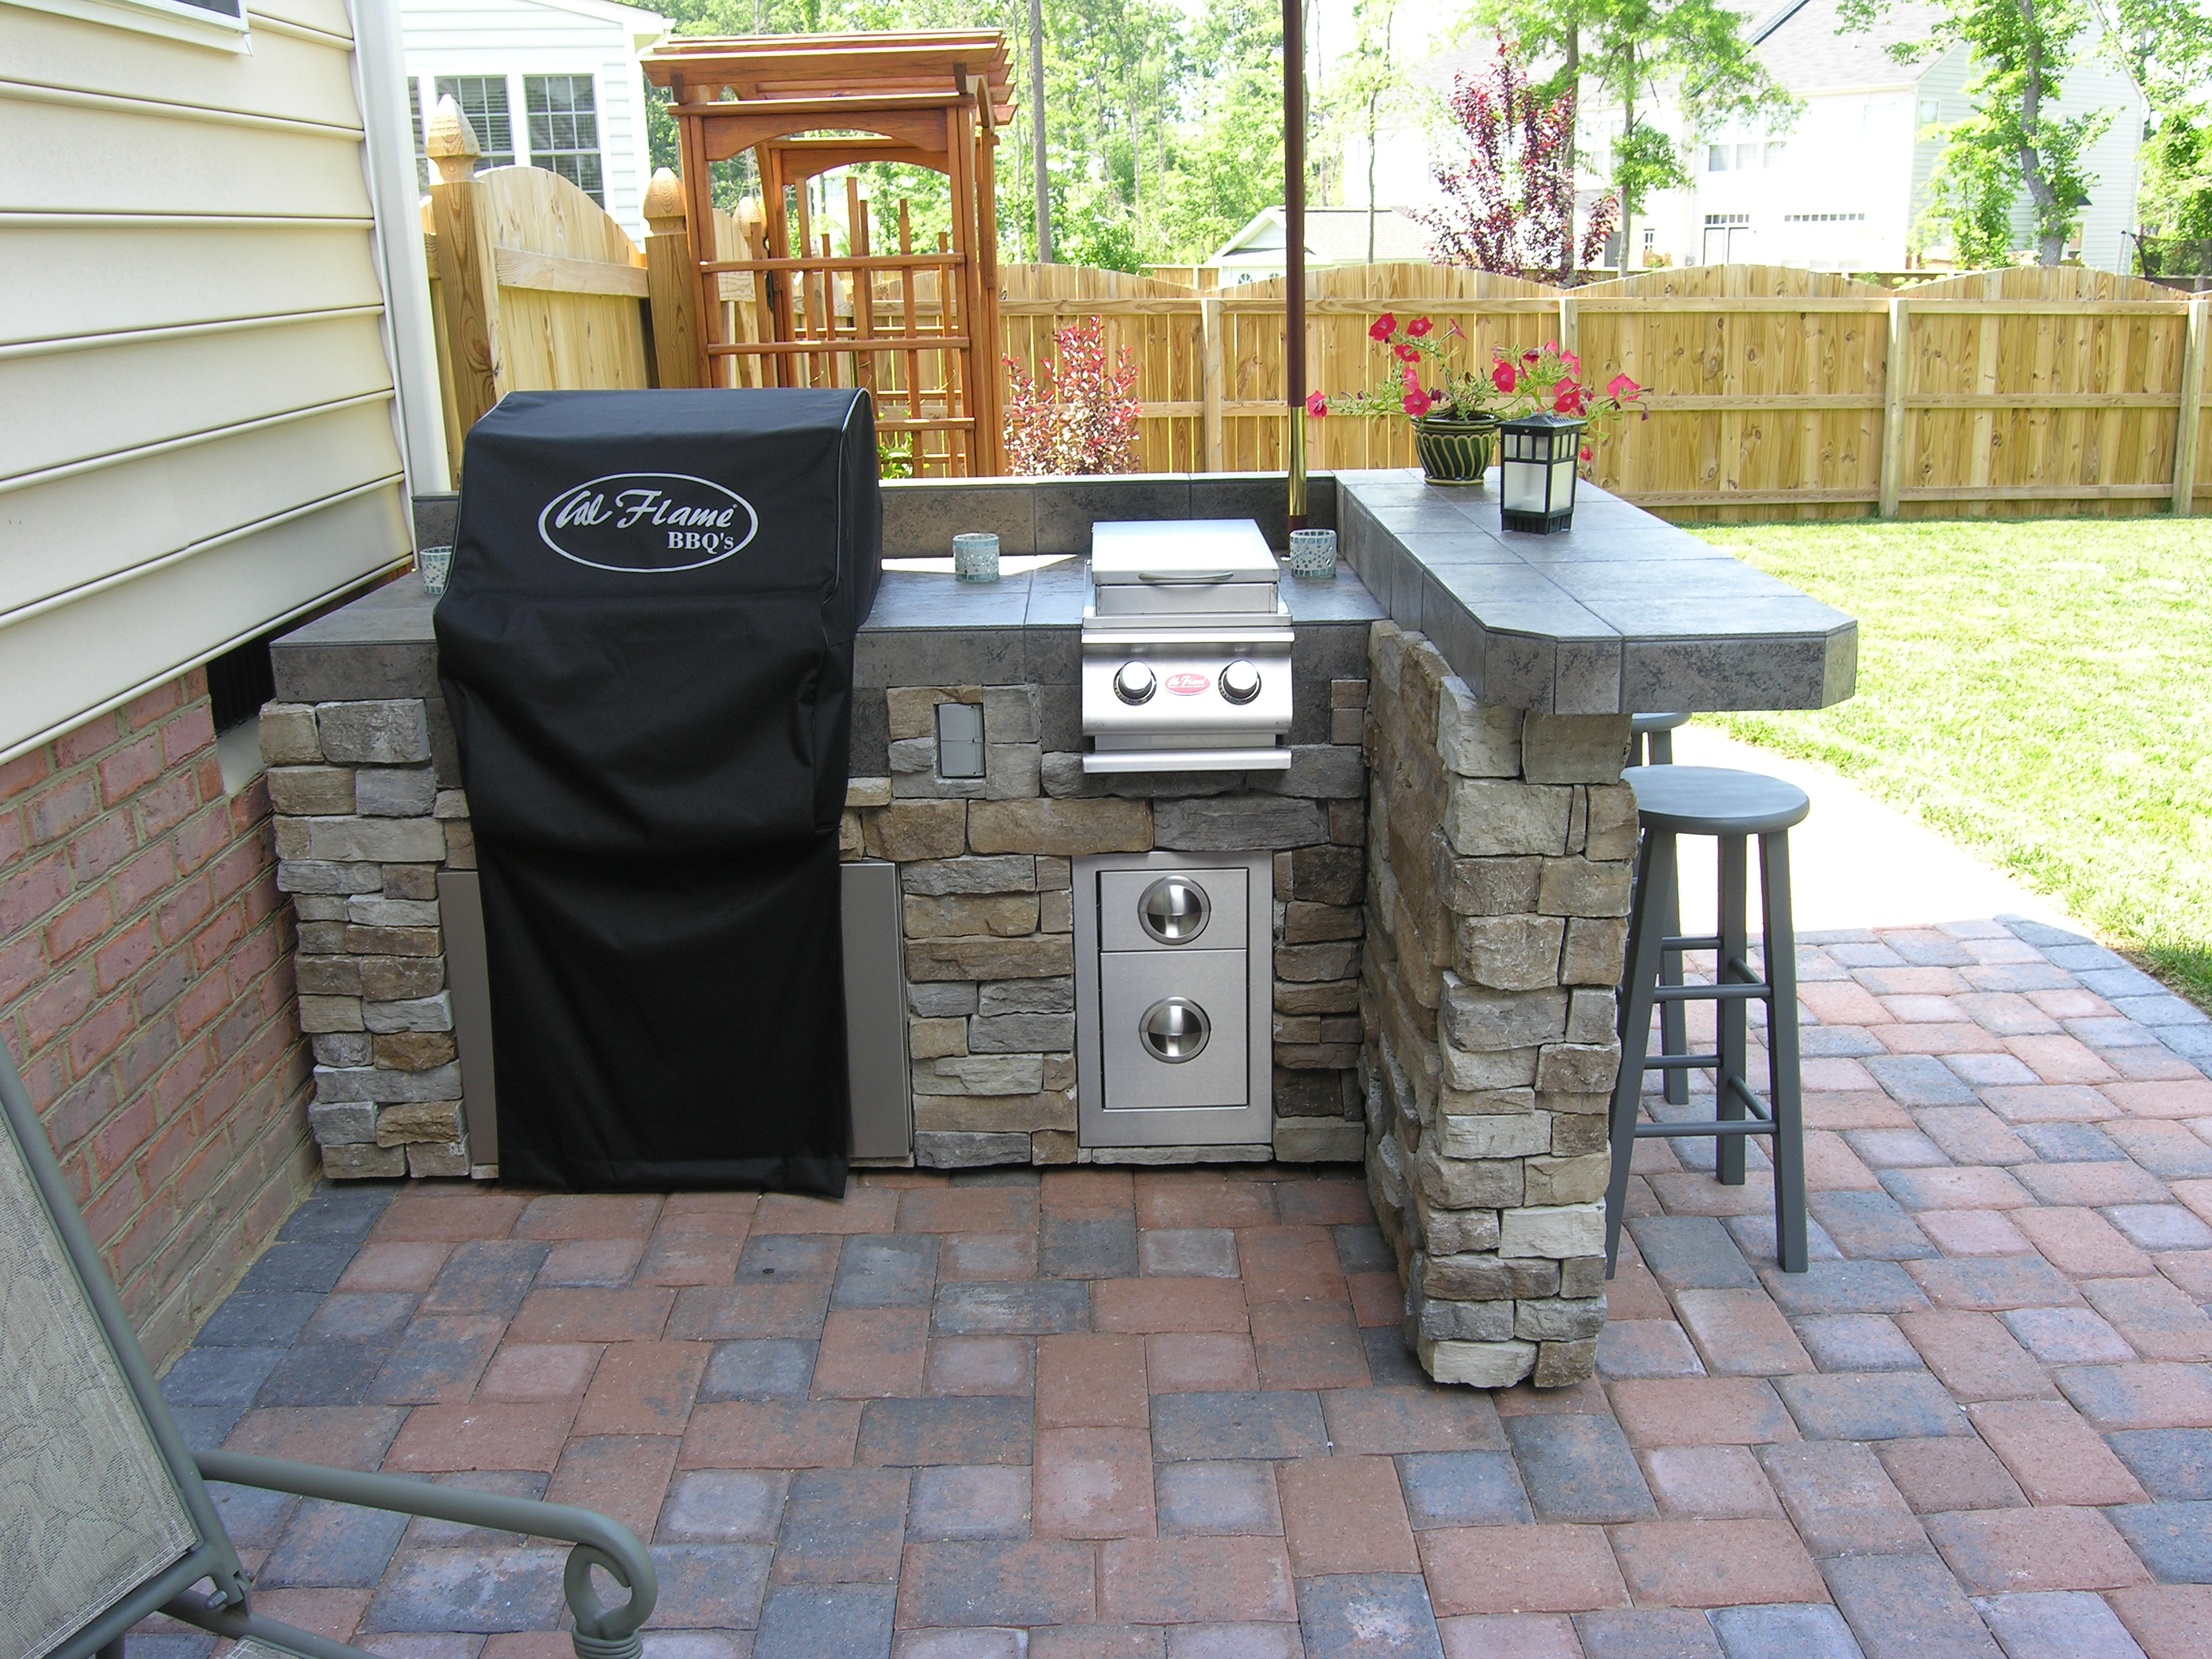 17 best ideas about outdoor grill space on pinterest backyard kitchen outdoor grill area and outdoor bbq grills - Outdoor Grill Design Ideas